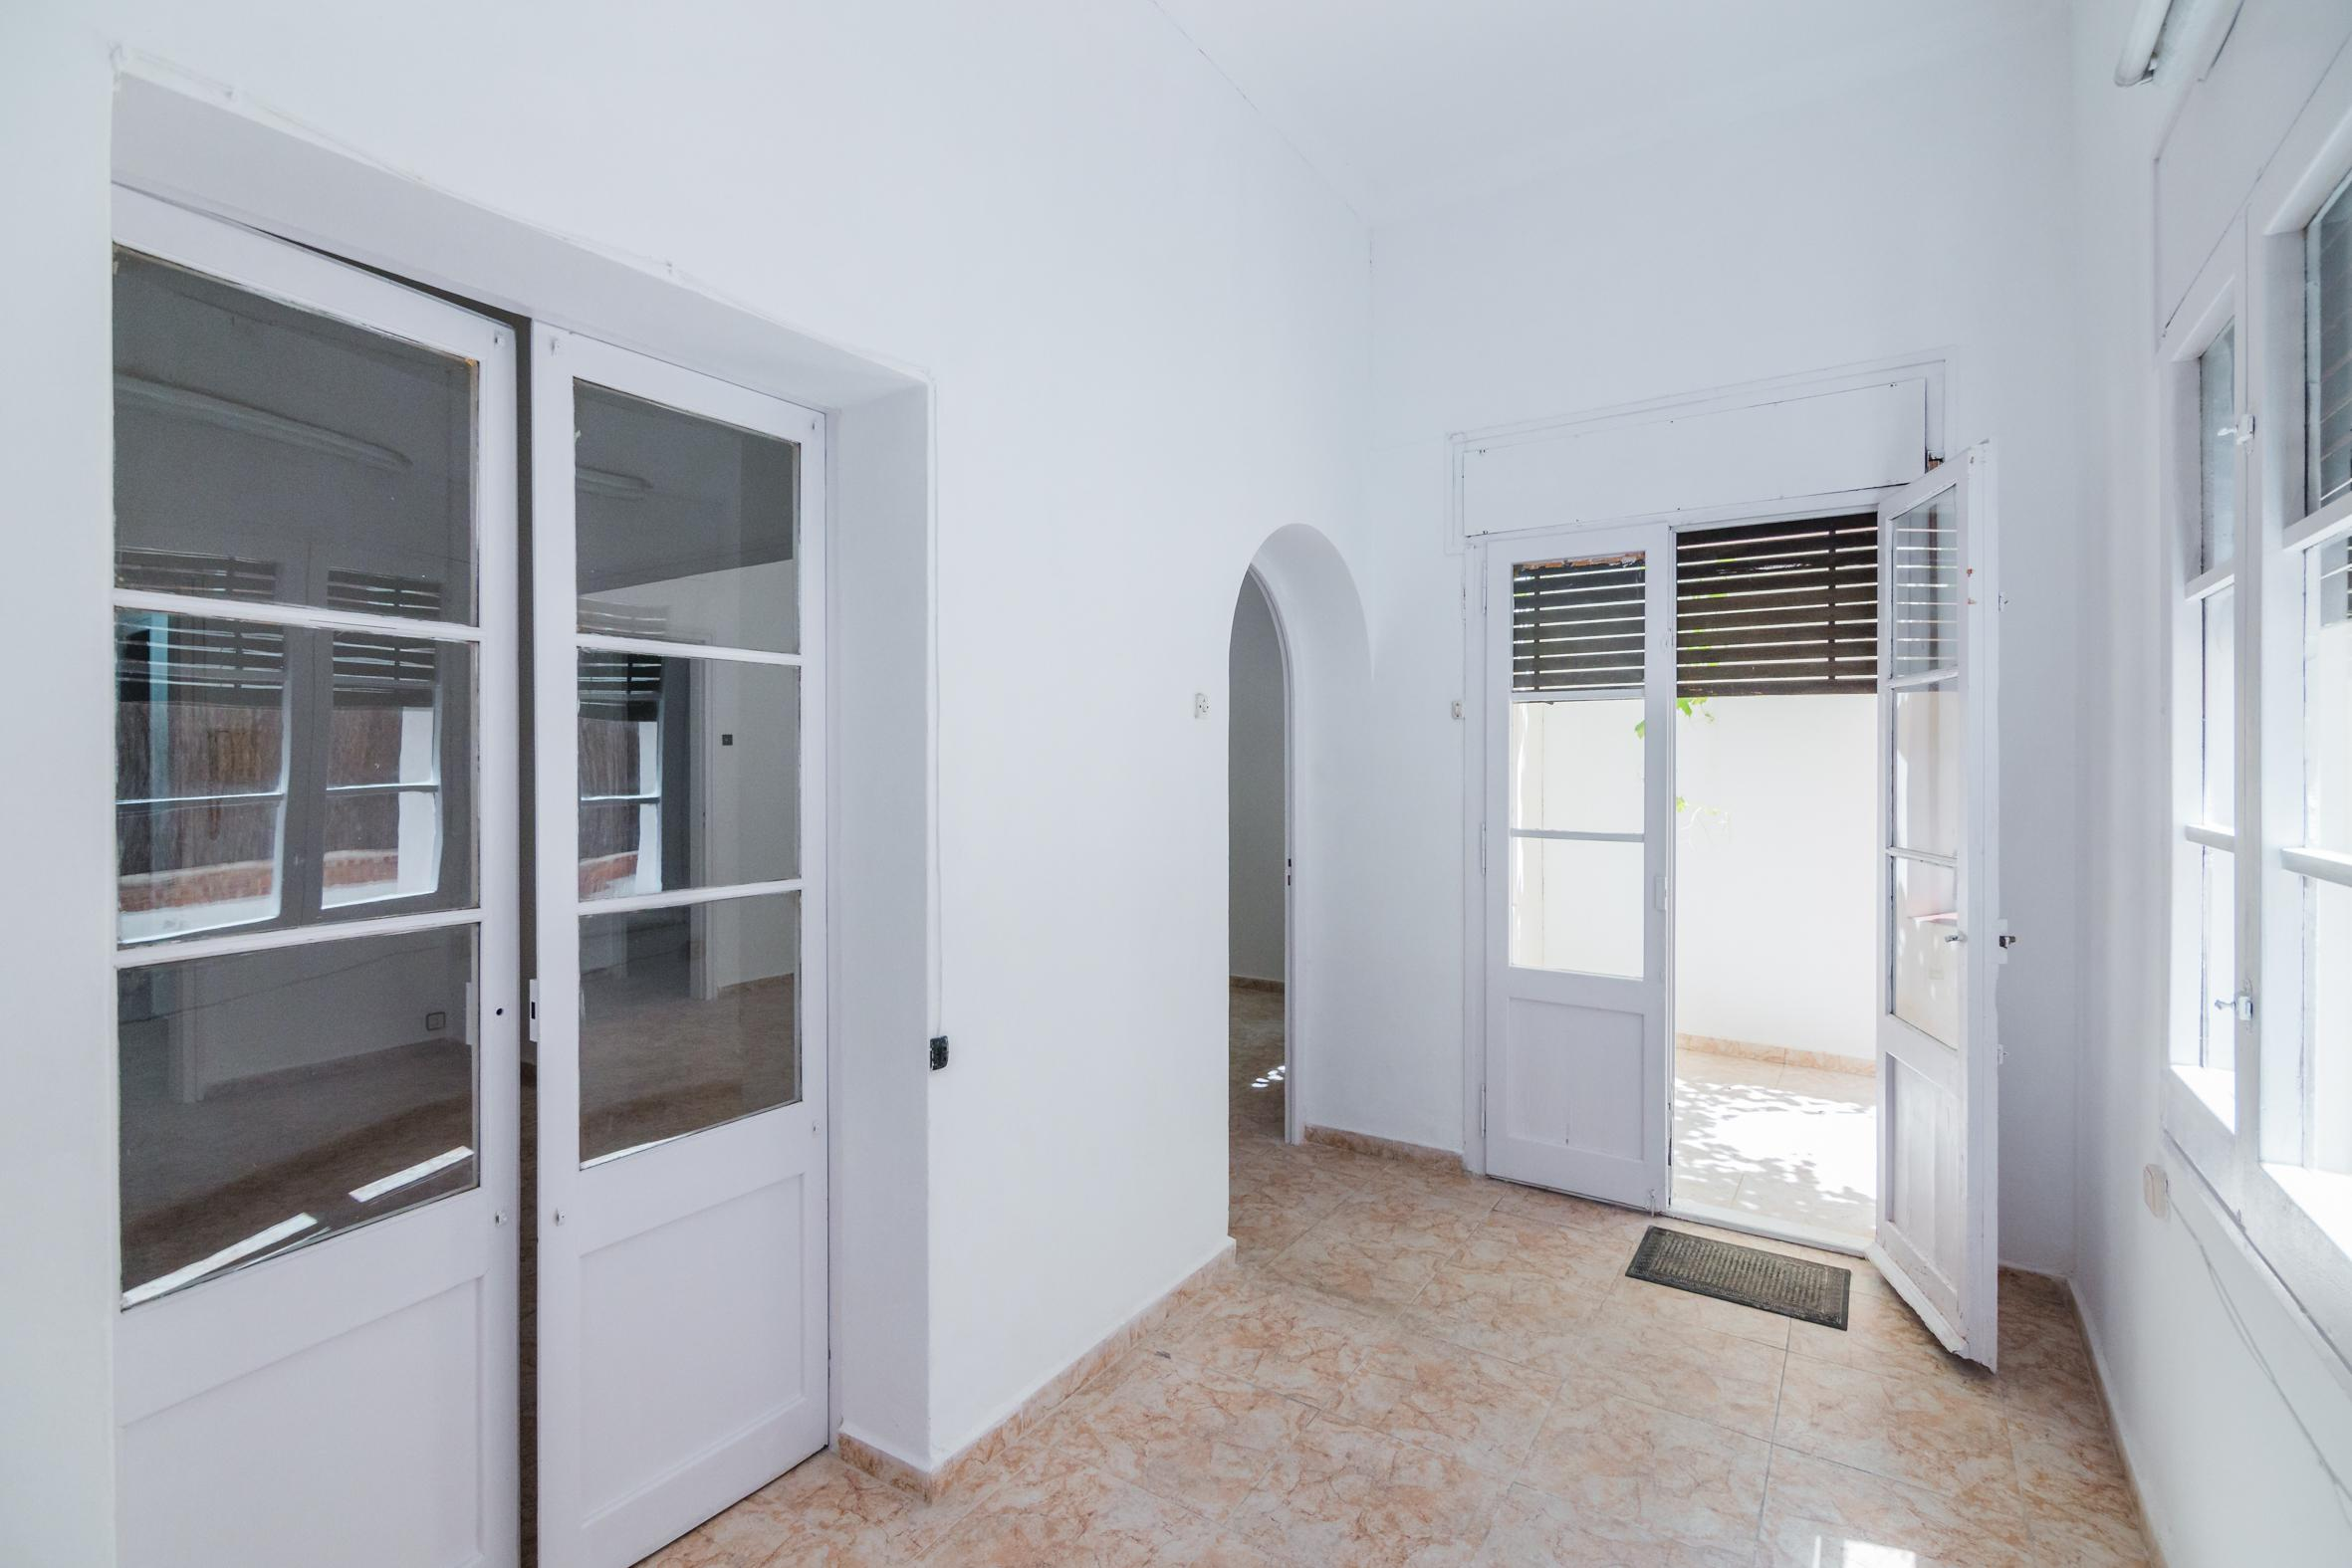 205188 Apartment for sale in Sarrià-Sant Gervasi, St. Gervasi-Bonanova 12